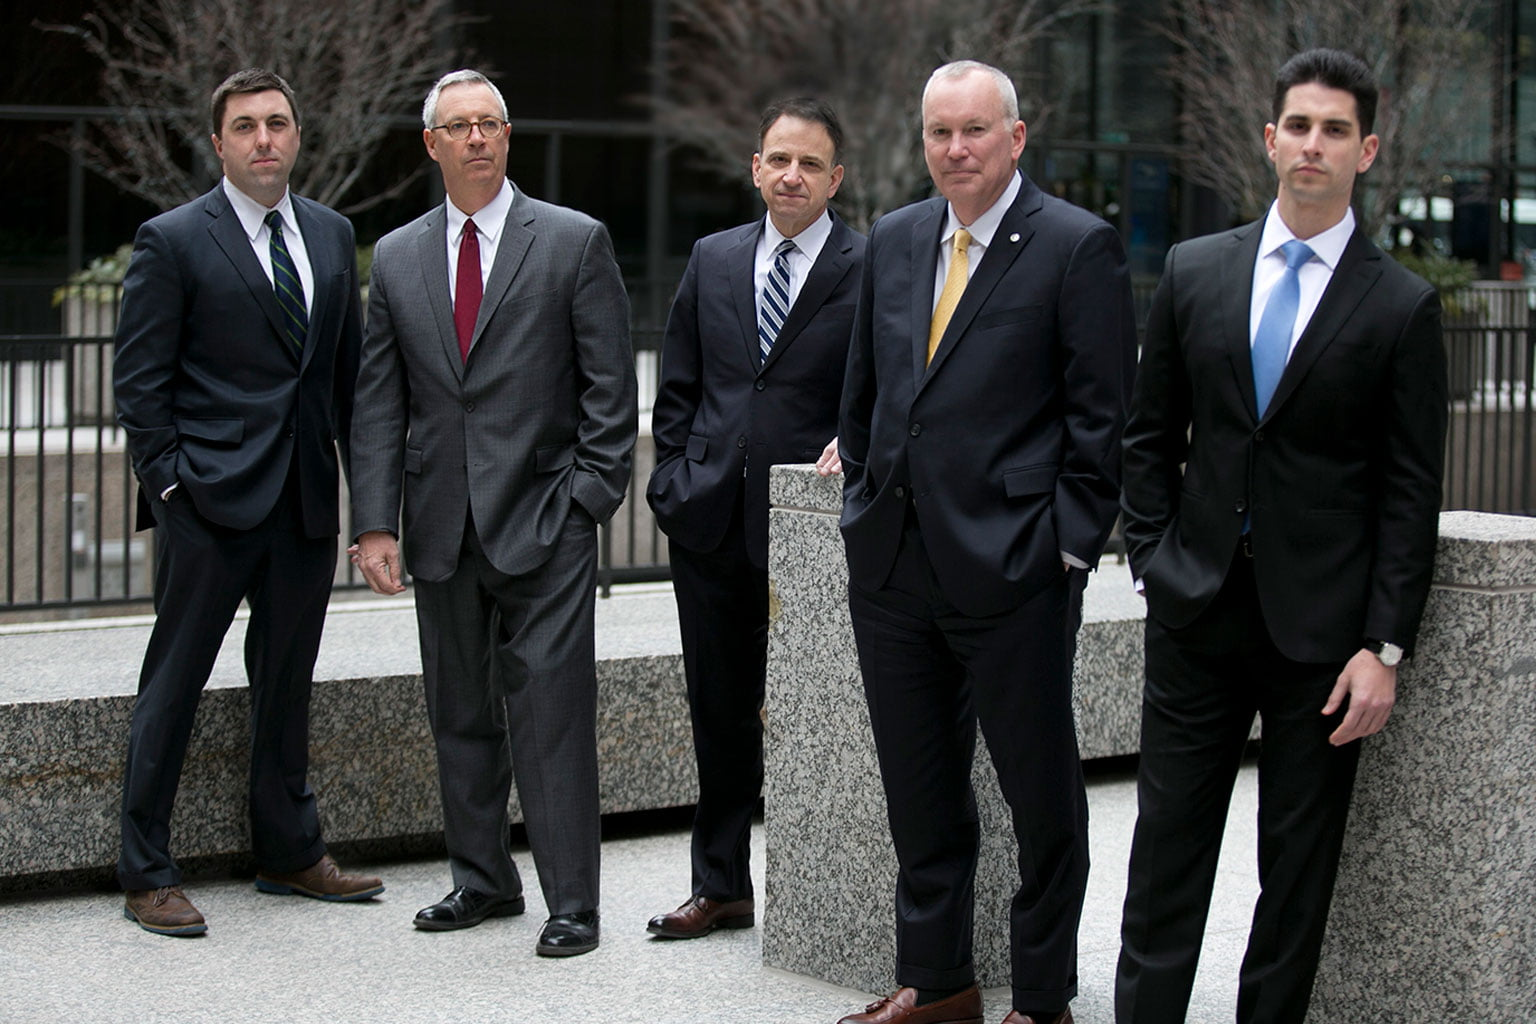 Photo of the attorneys for Capron Avgerinos outside of their office.